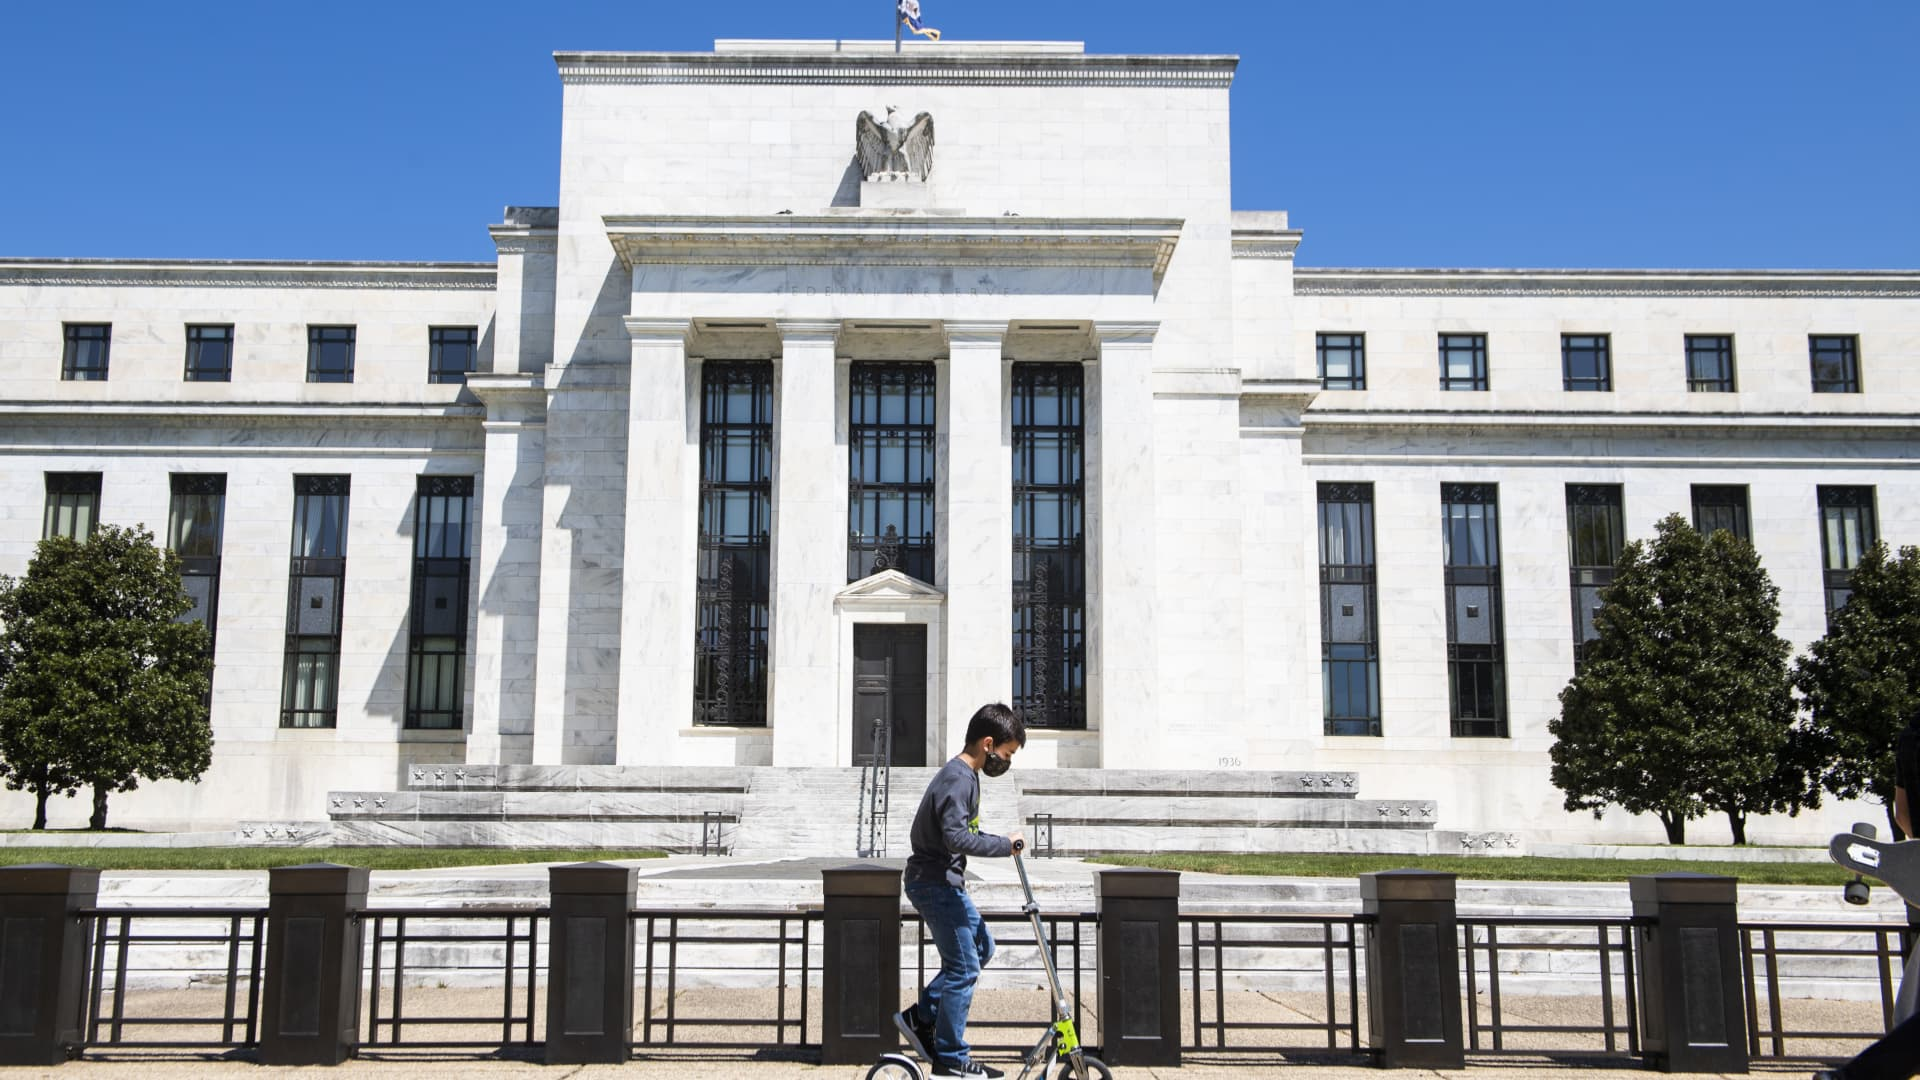 A child passes by the Marriner S. Eccles Federal Reserve Board Building on Constitution Avenue, NW, on Monday, April 26, 2021.